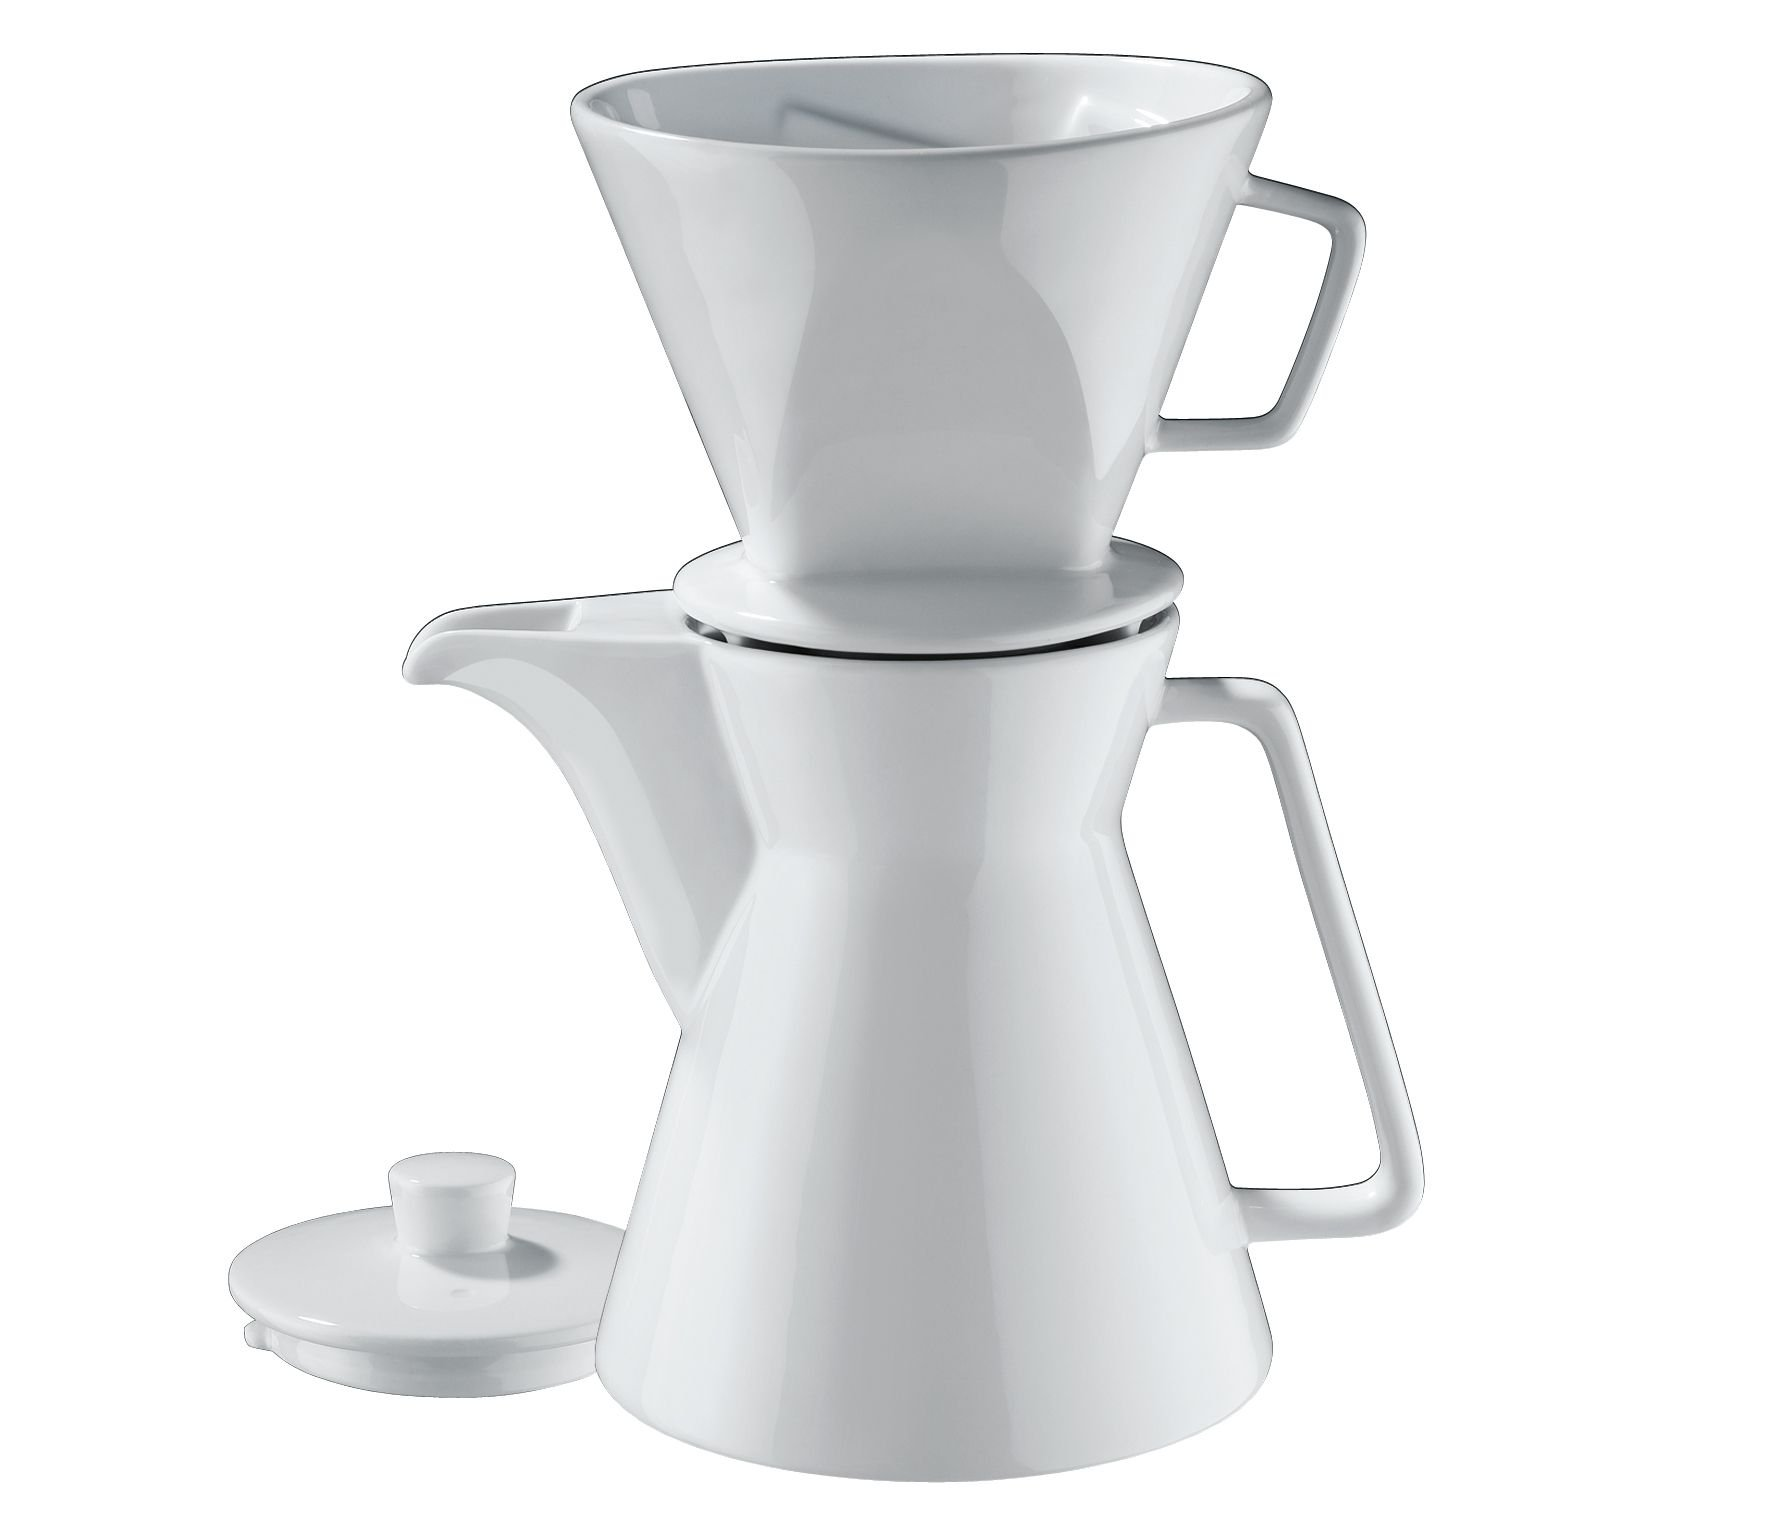 Cilio Premium Vienna Akantus White Porcelain 1l Coffee Pot & 4 Cup Filter Holder